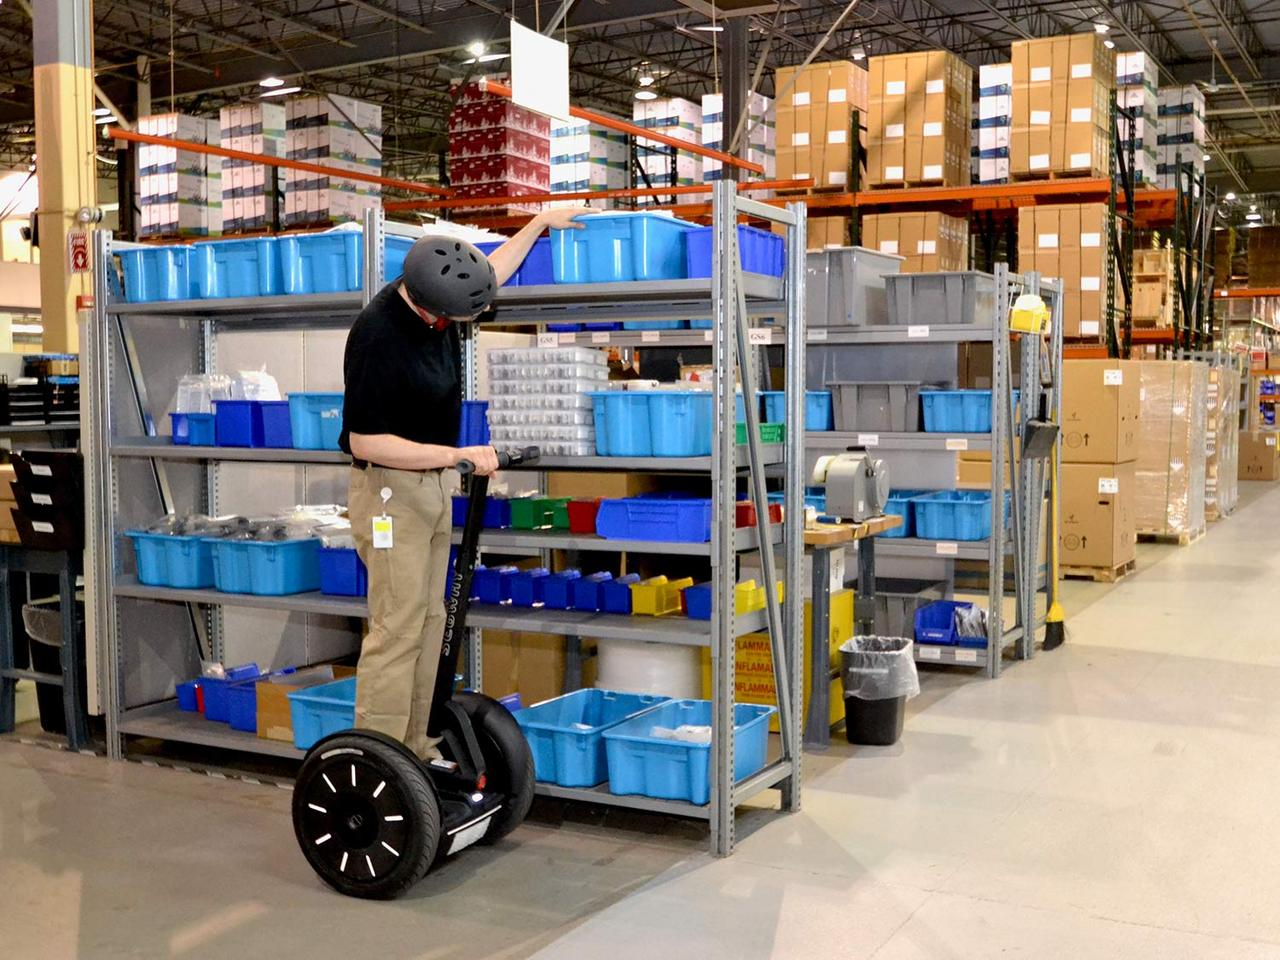 The classic Segway is being discontinued